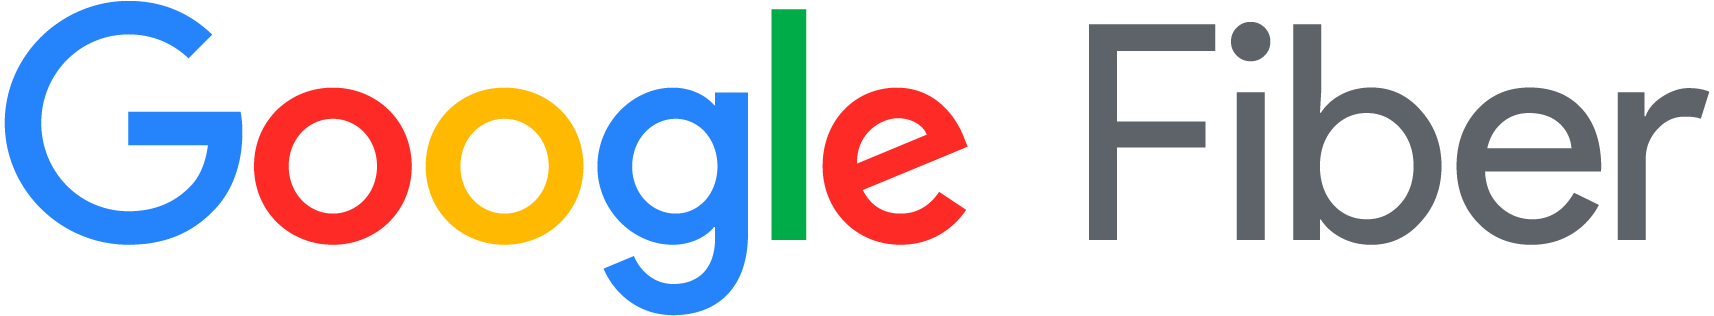 Copy of GoogleFiber_logo-color